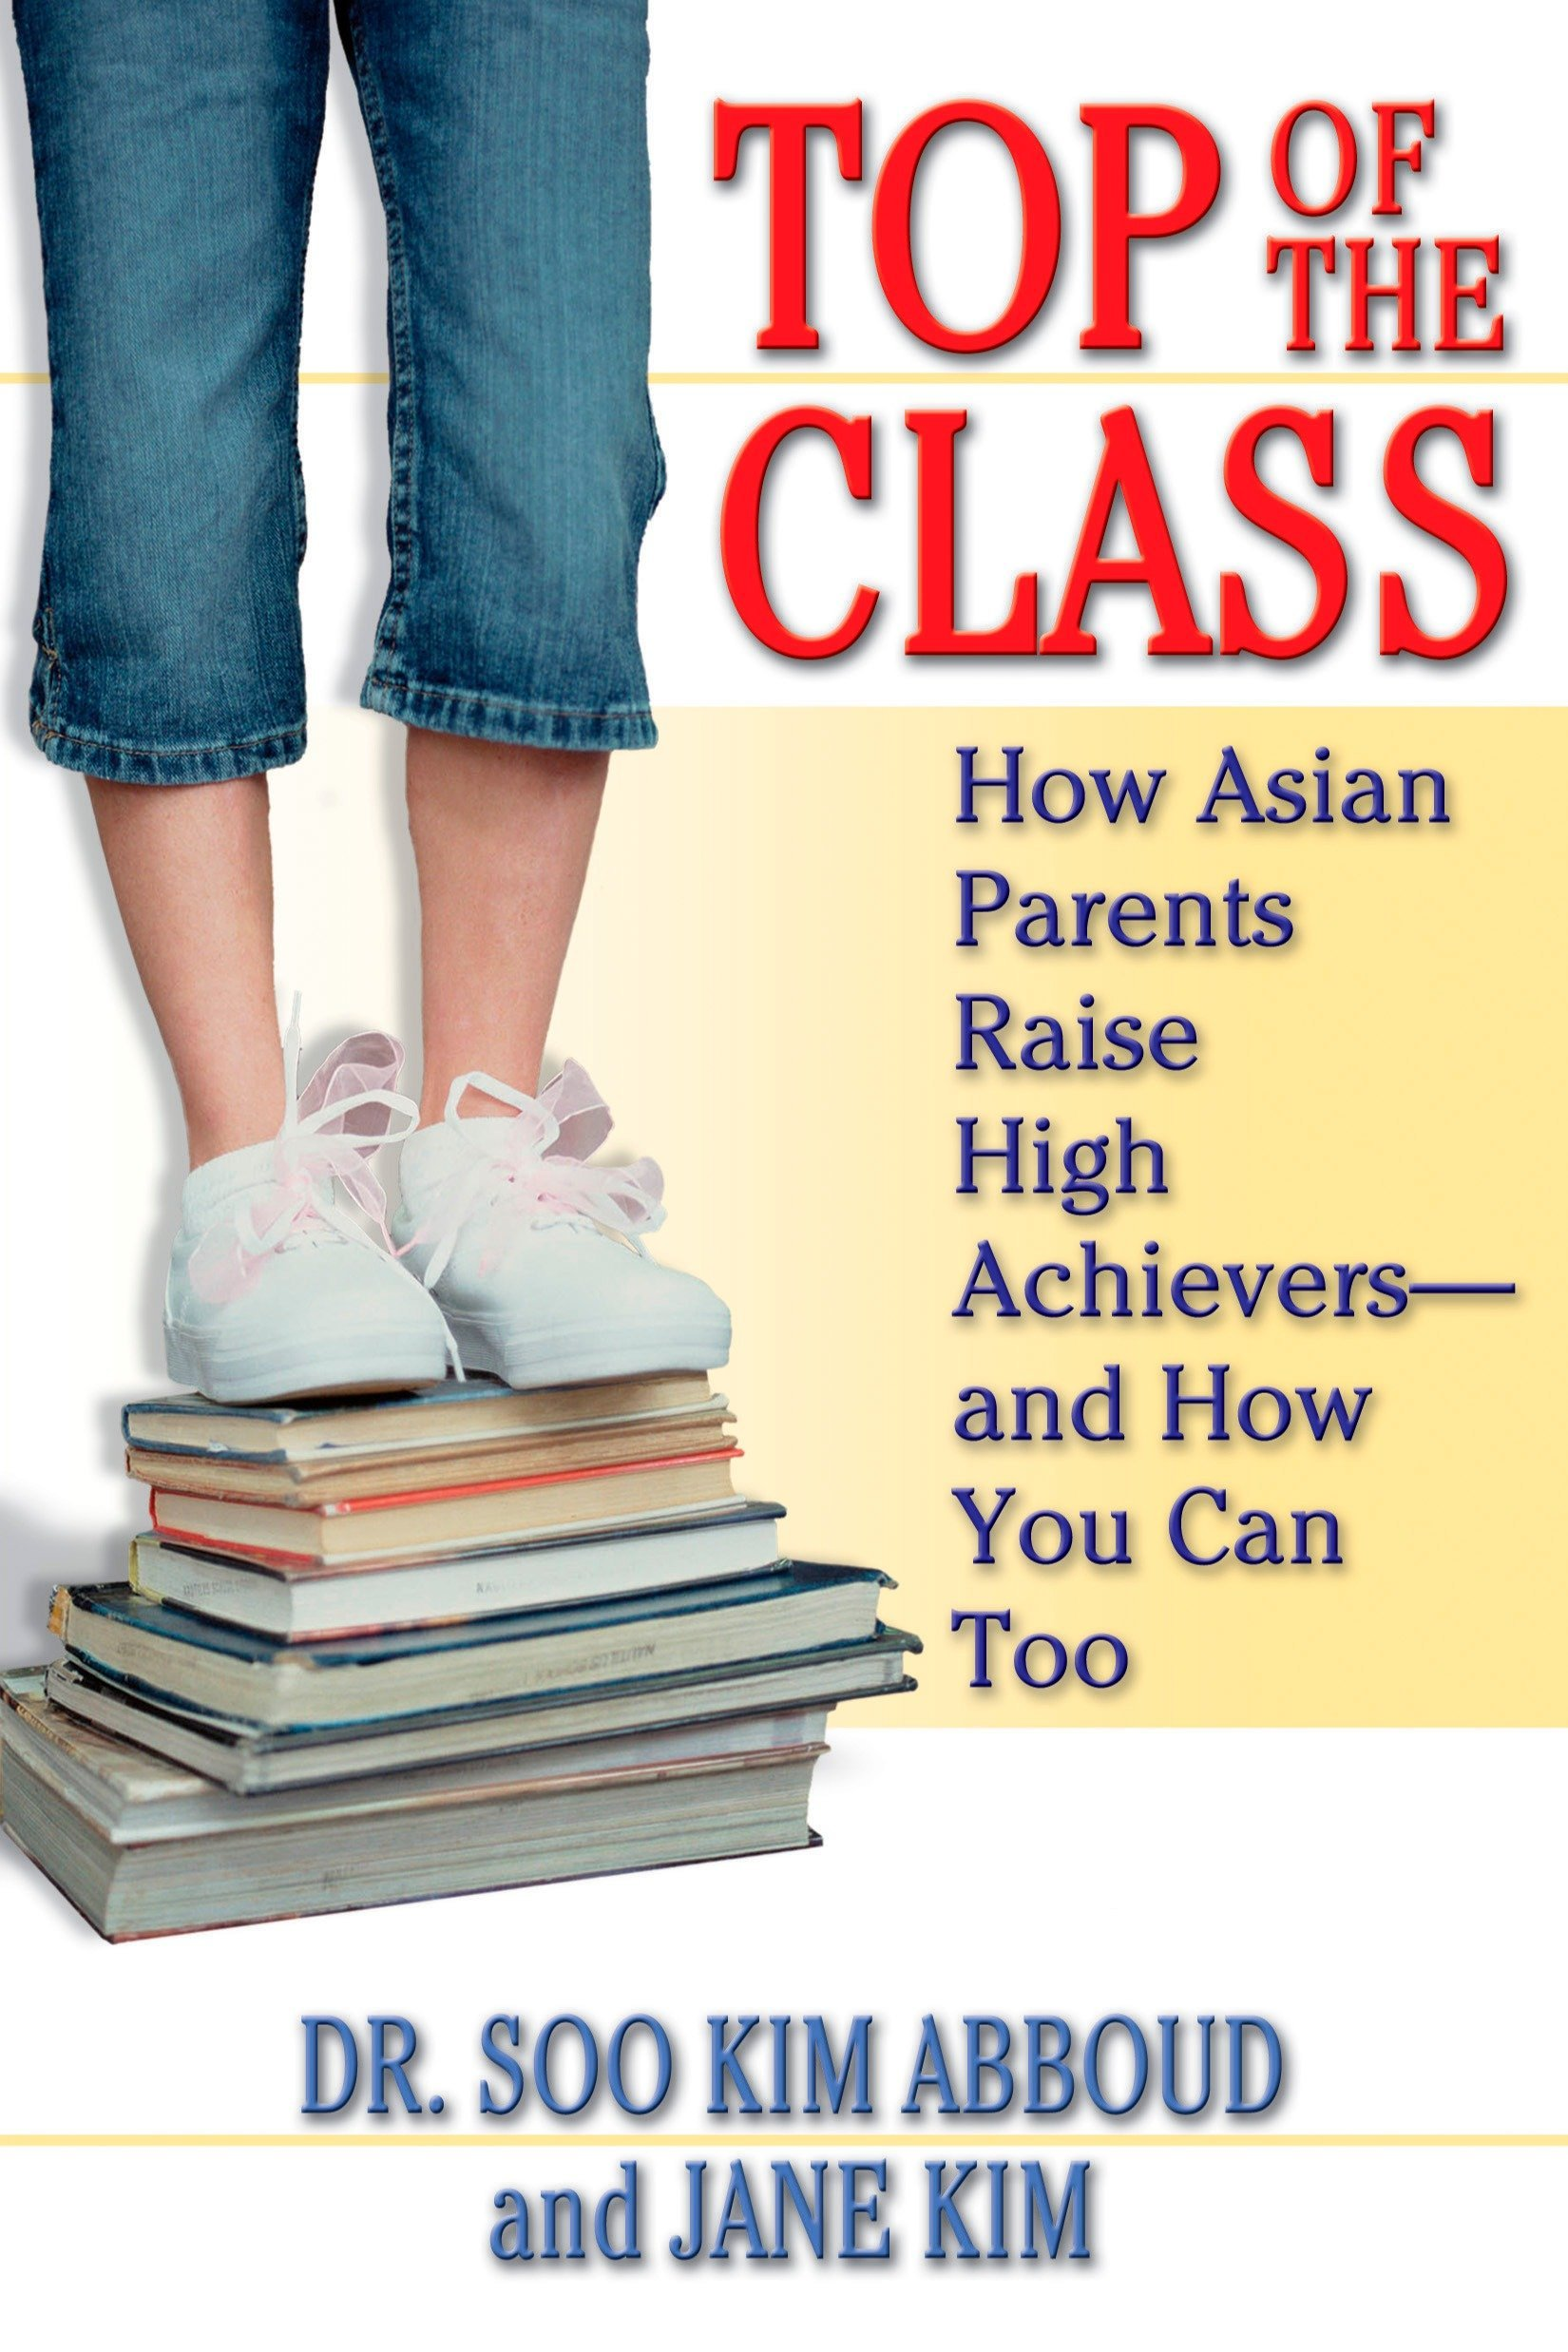 Top Of The Class  How Asian Parents Raise High Achievers  And How You Can Too